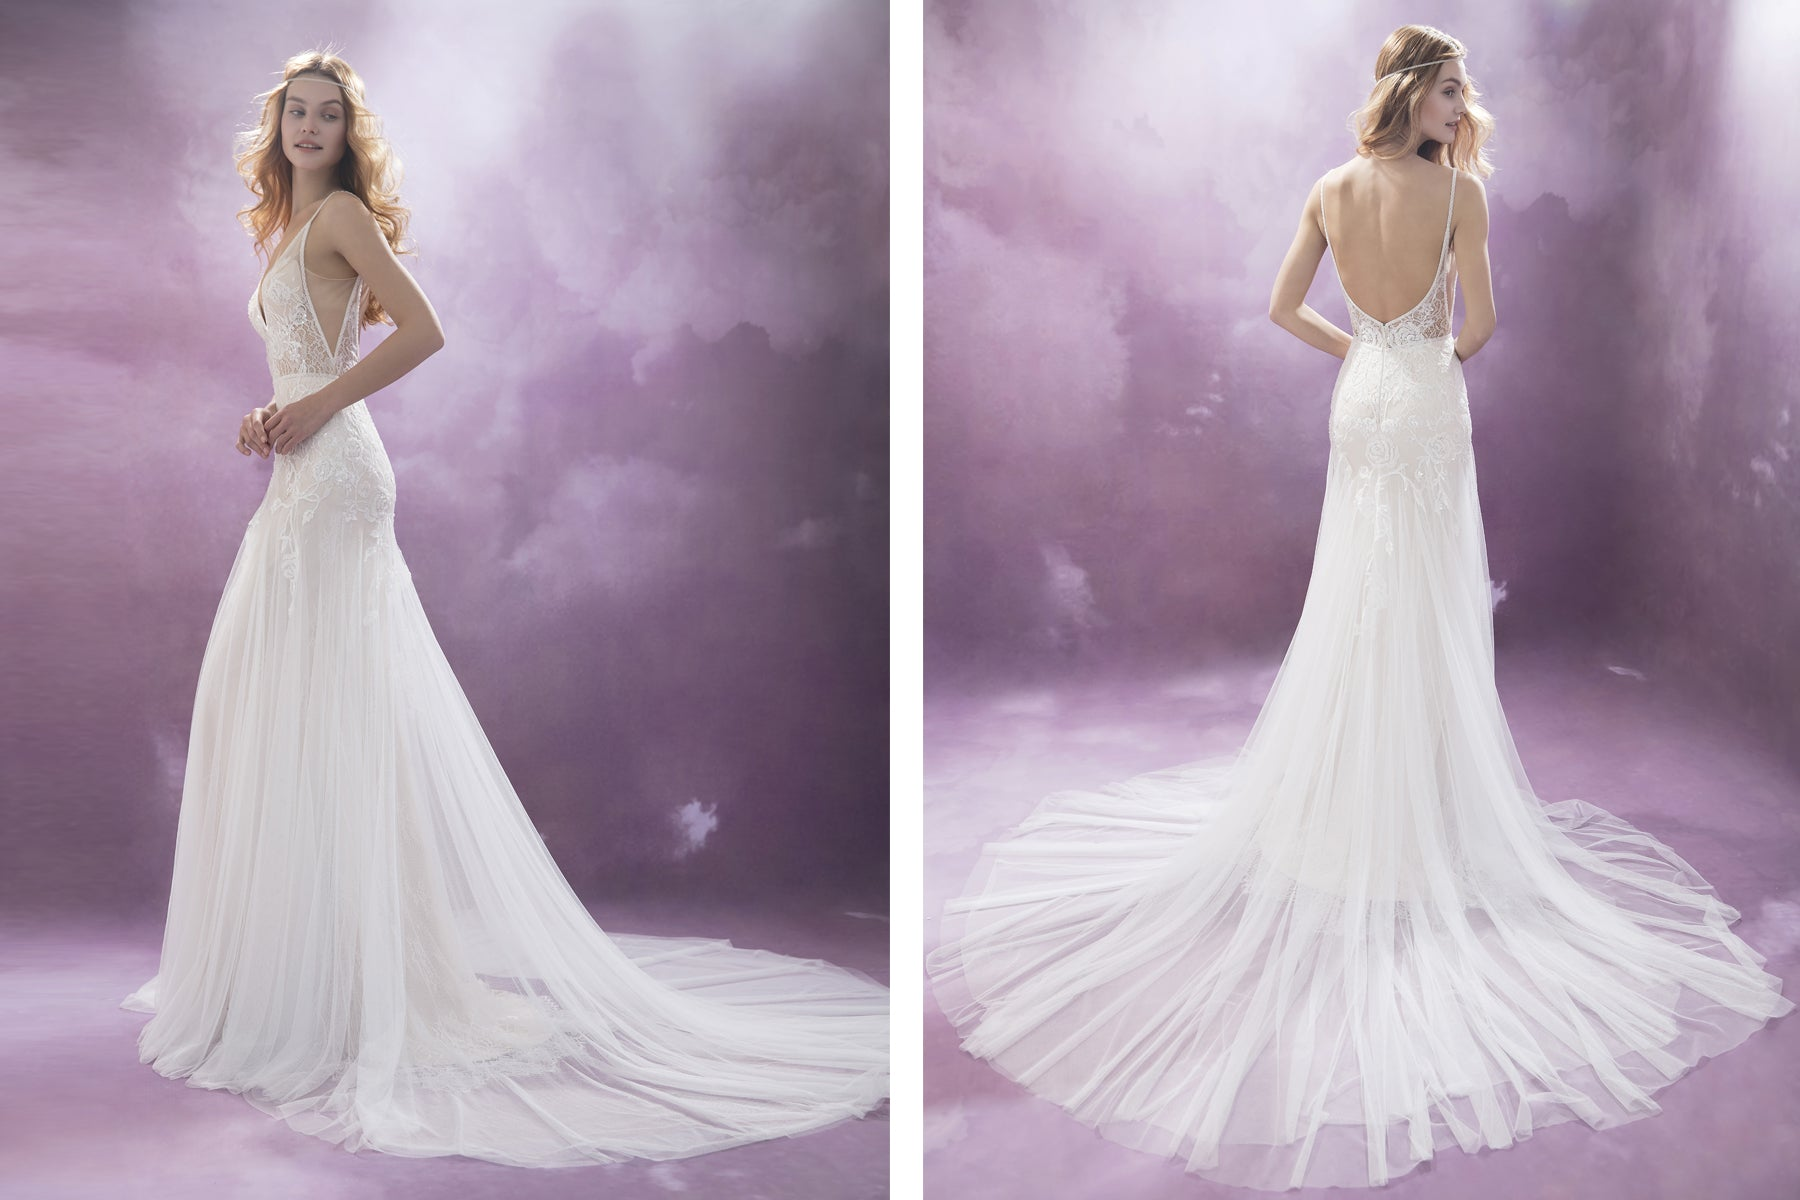 Eternal_Bridal_Affordable_Boho_Luxe_Chic_Nostalgia_Electra